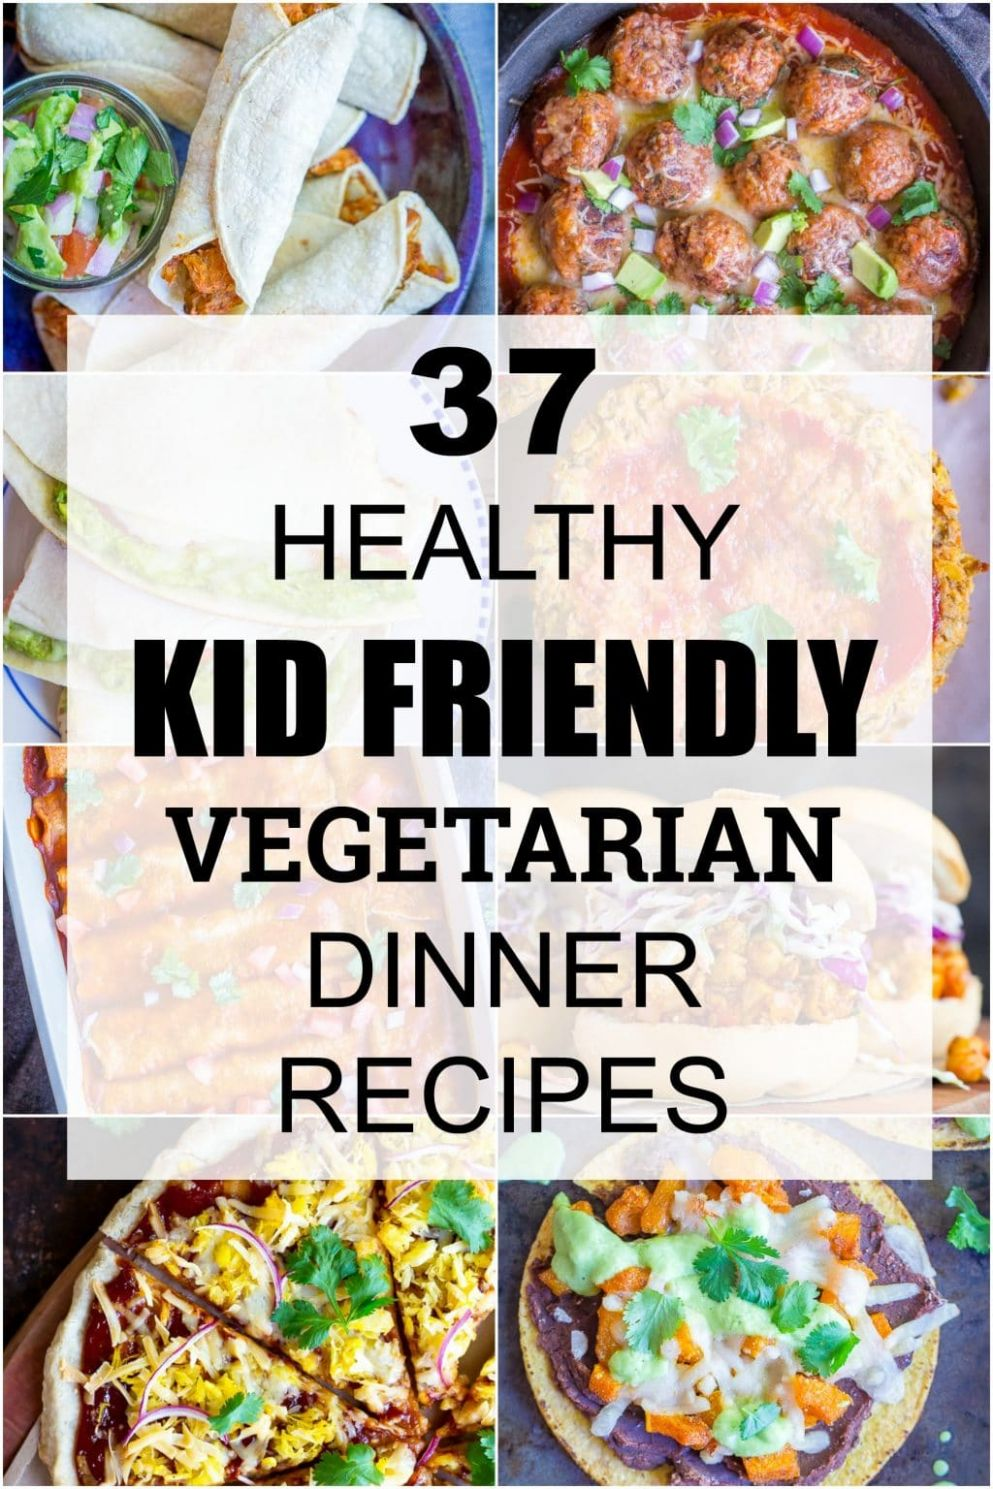 12 Healthy Kid Friendly Vegetarian Dinner Recipes - She Likes Food - Easy Recipes No Meat